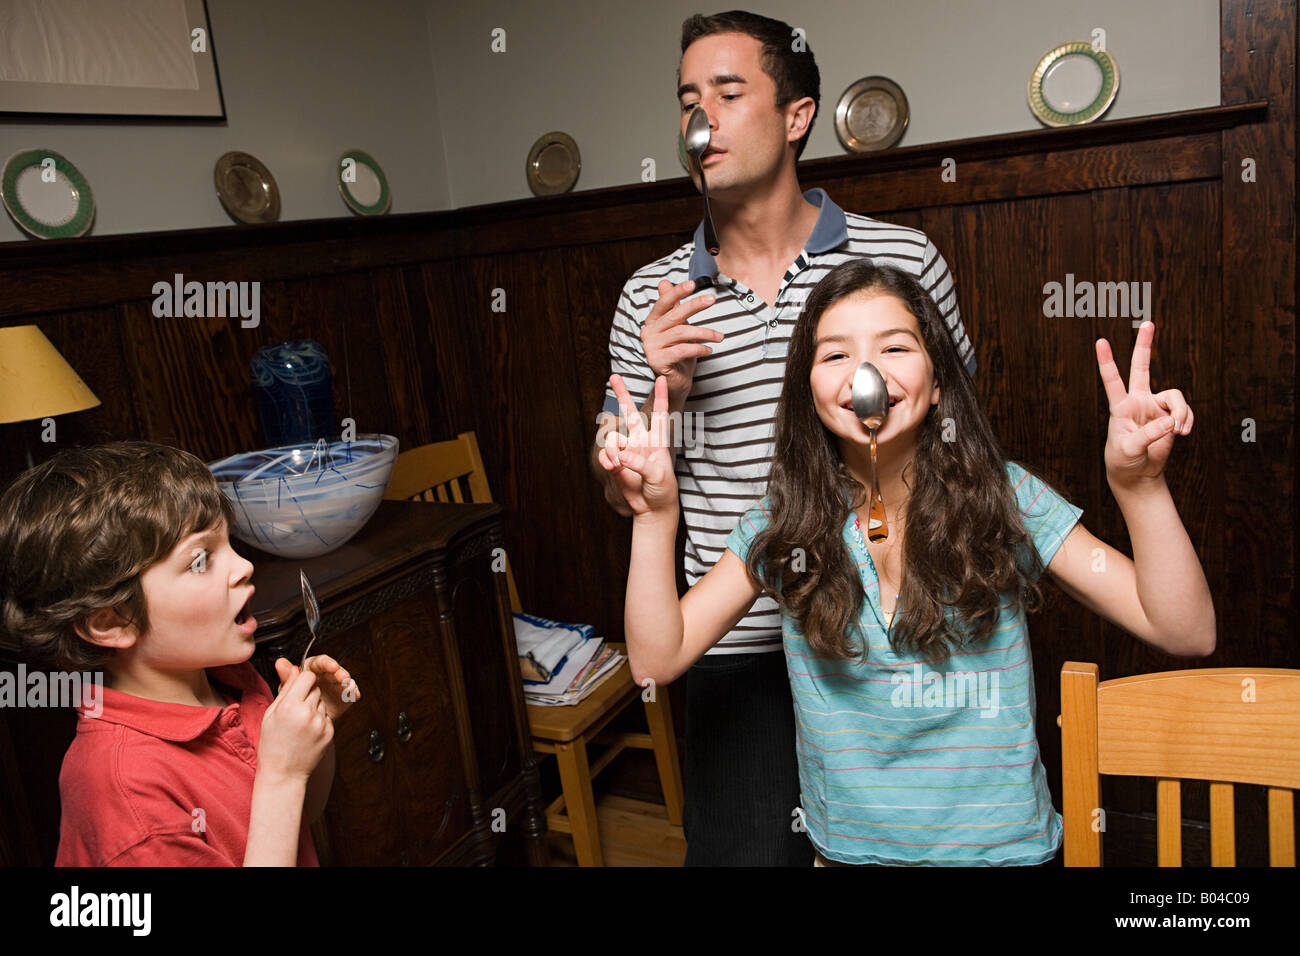 A father and his children hanging spoons on their noses - Stock Image